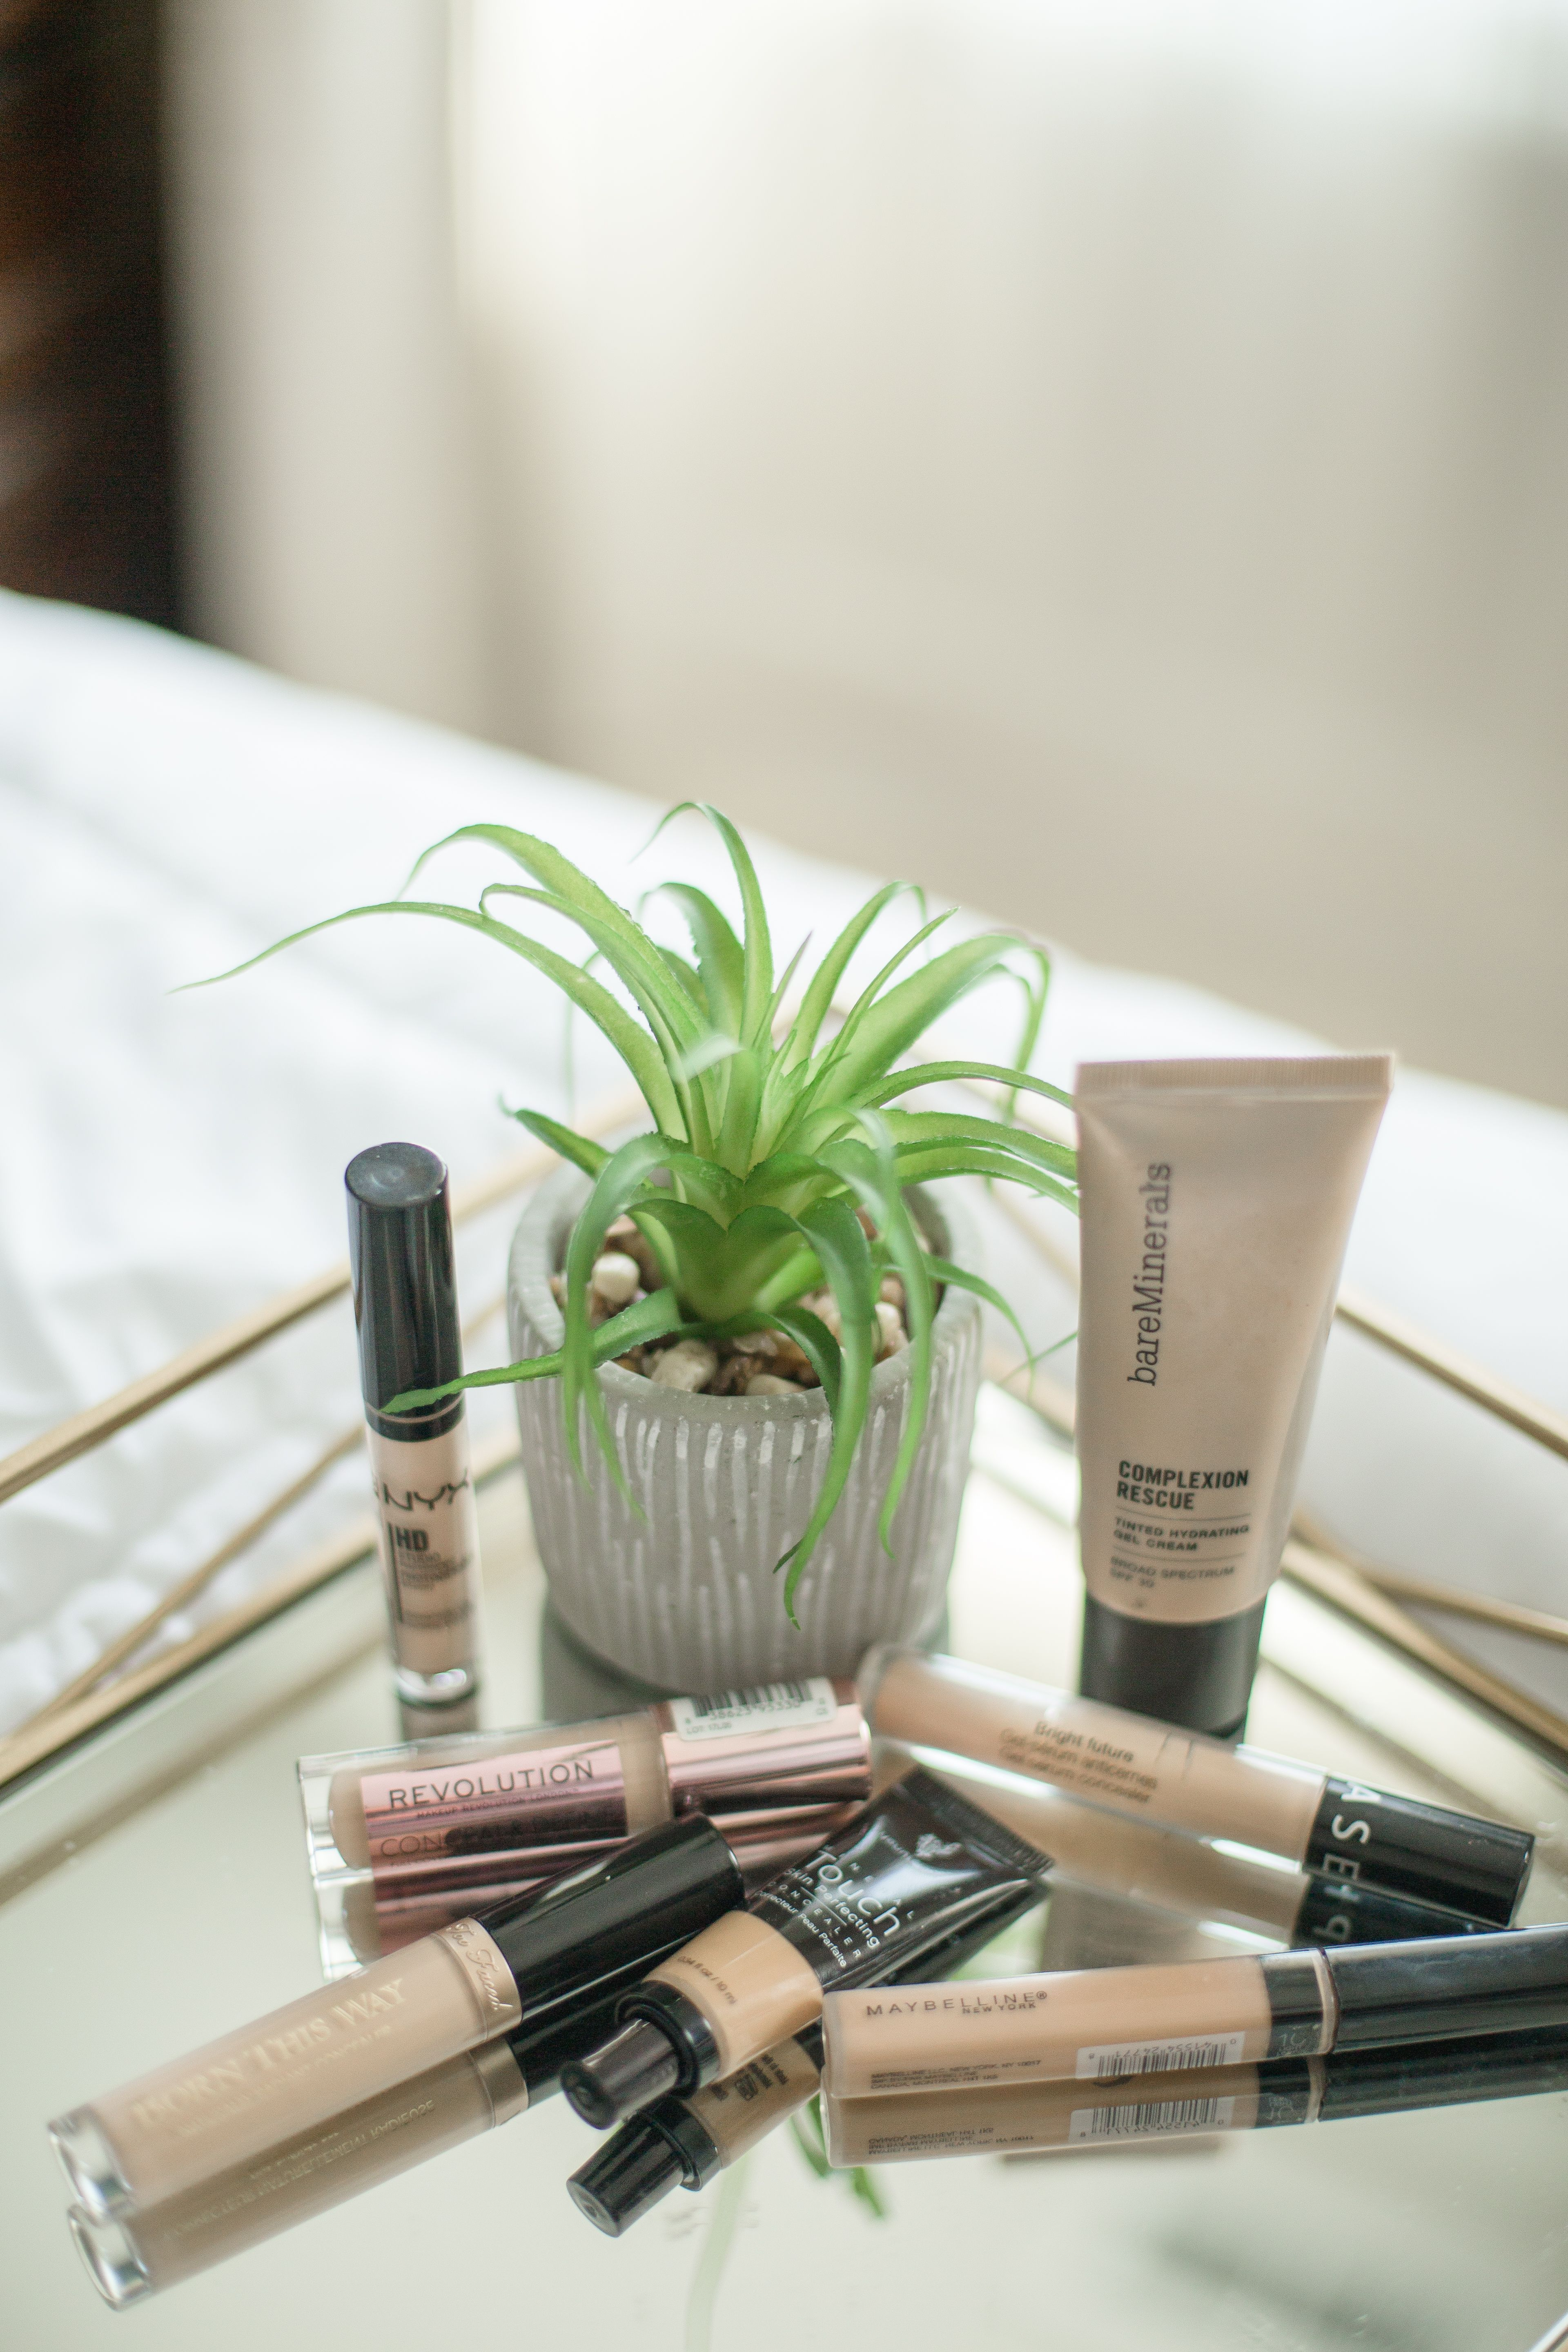 Do you need help finding the perfect foundation? The Fair